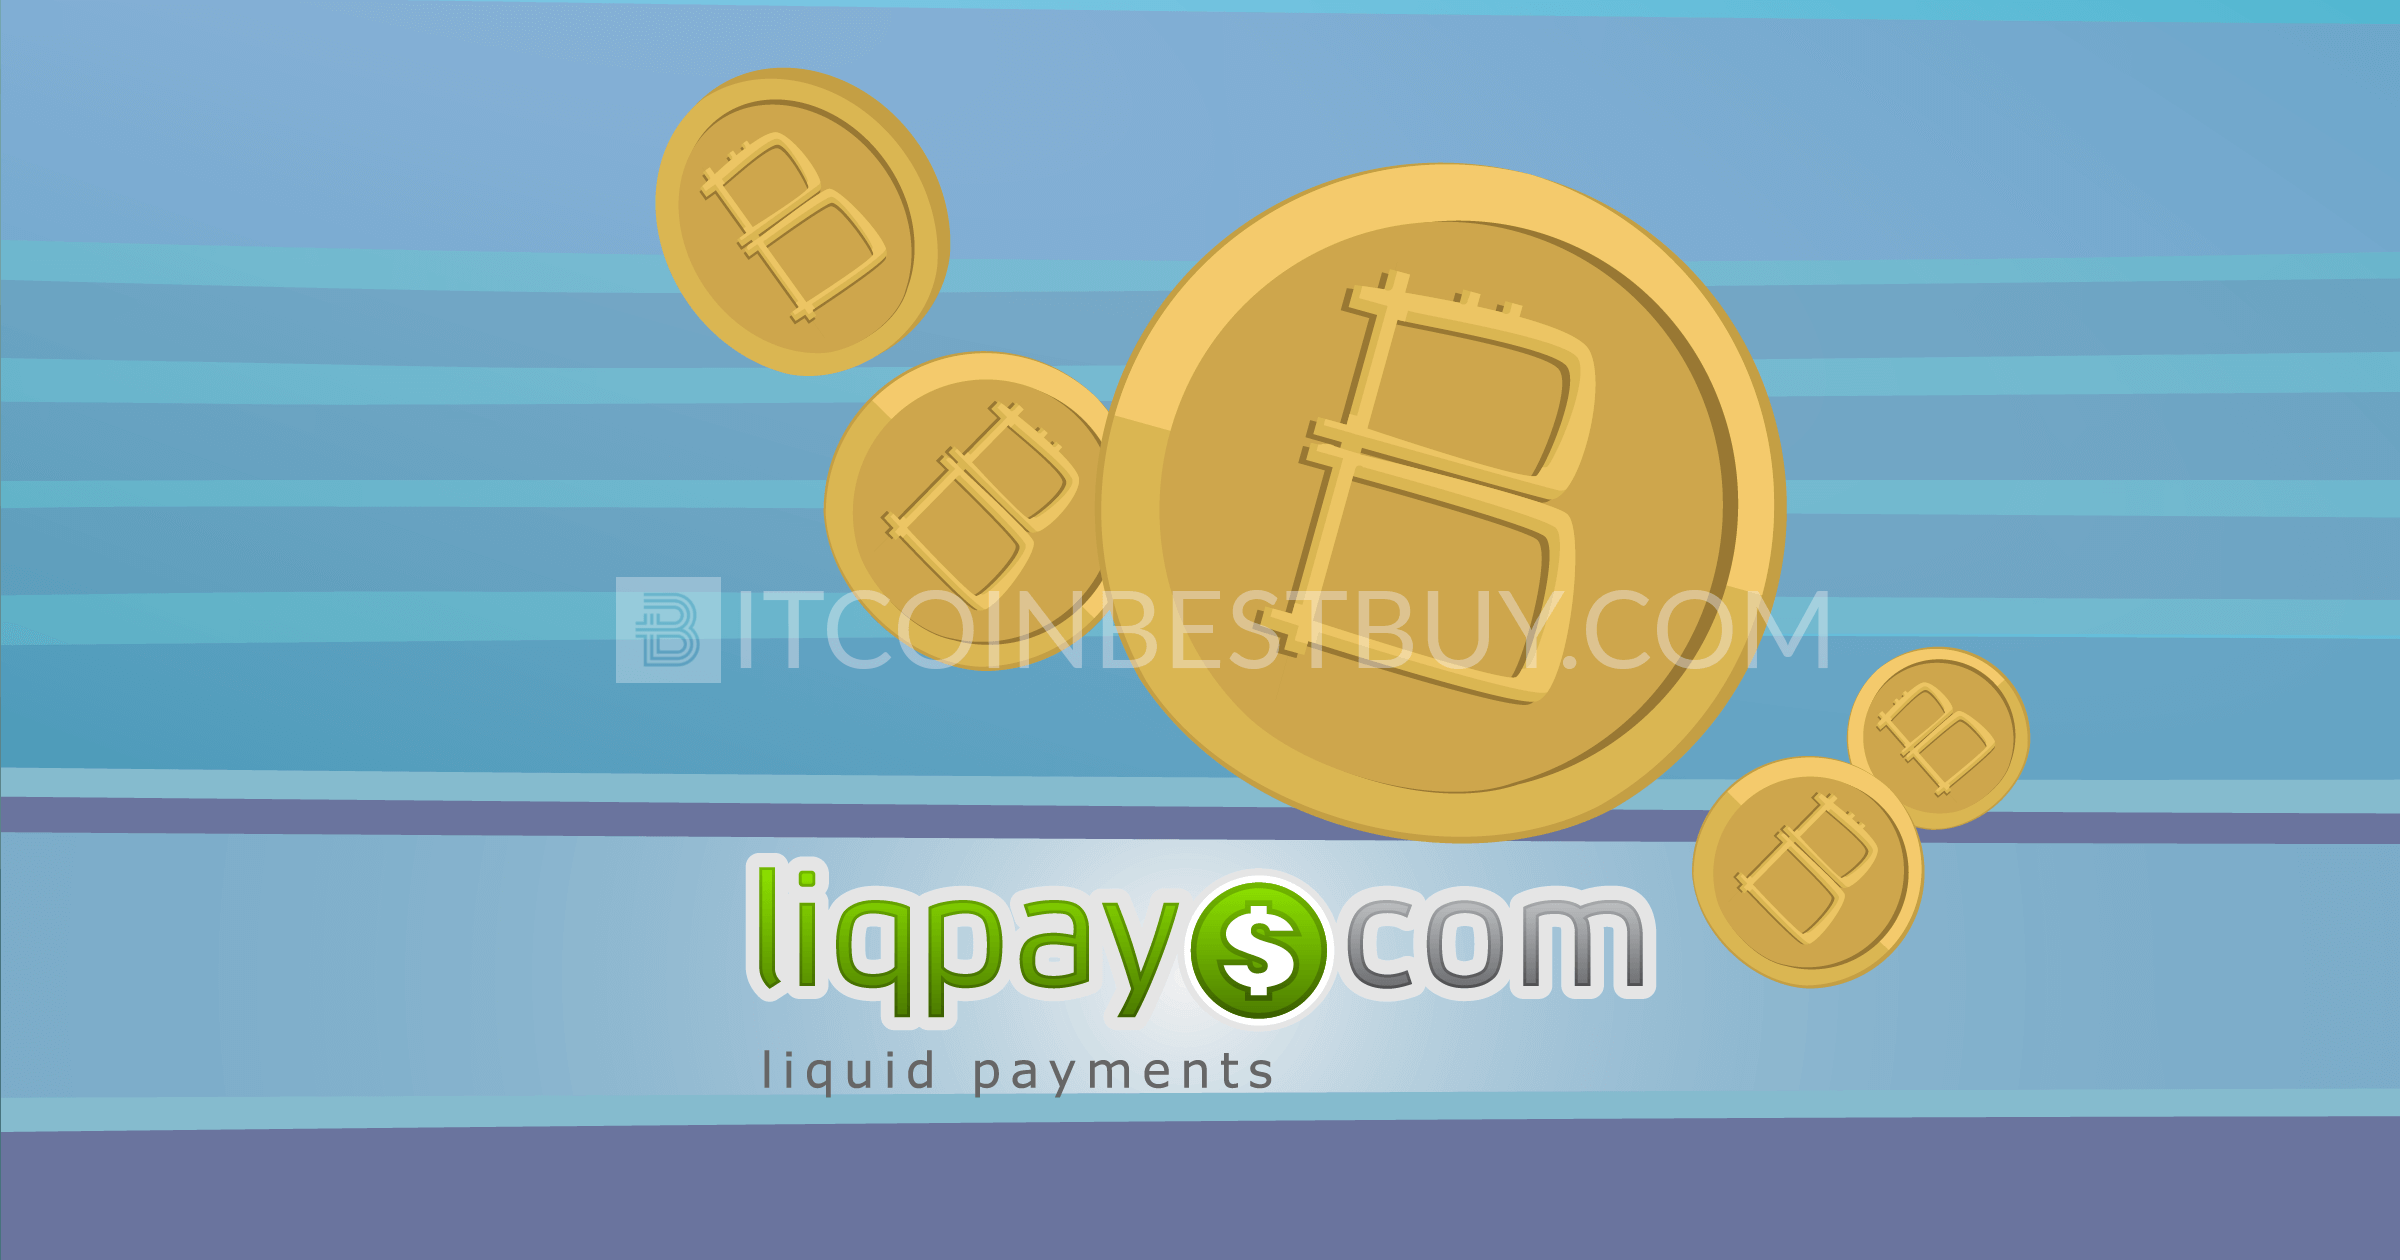 How to buy btc with liqpay online review of trusted exchanges stay tuned as we go through the liqpay specifications pros cons and exchanges that accept the option we will end the review with the safest way to store ccuart Images